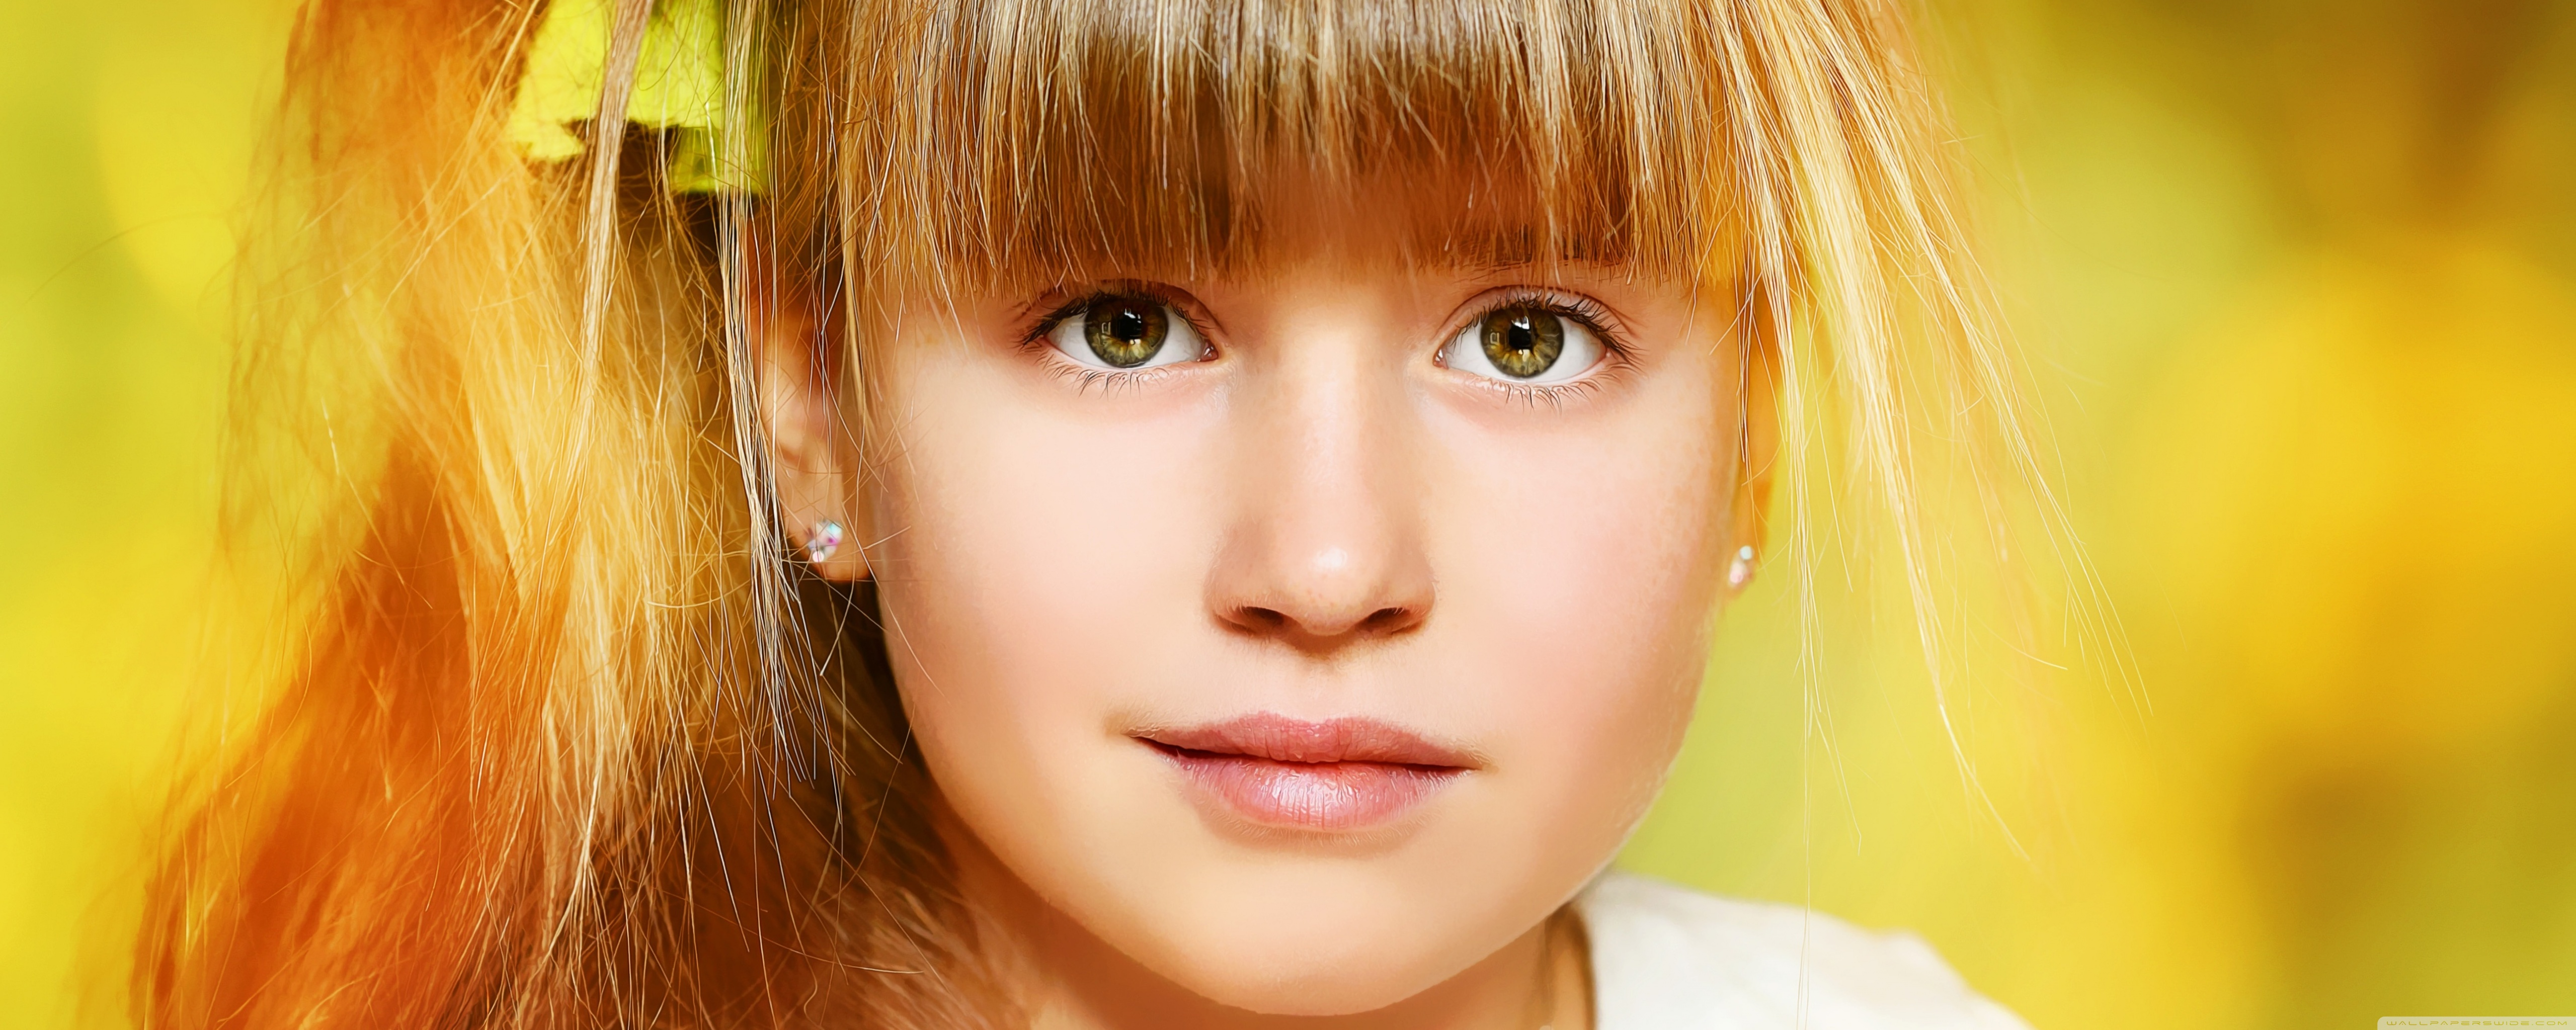 Download Free WallpaperYoung Girl Portrait